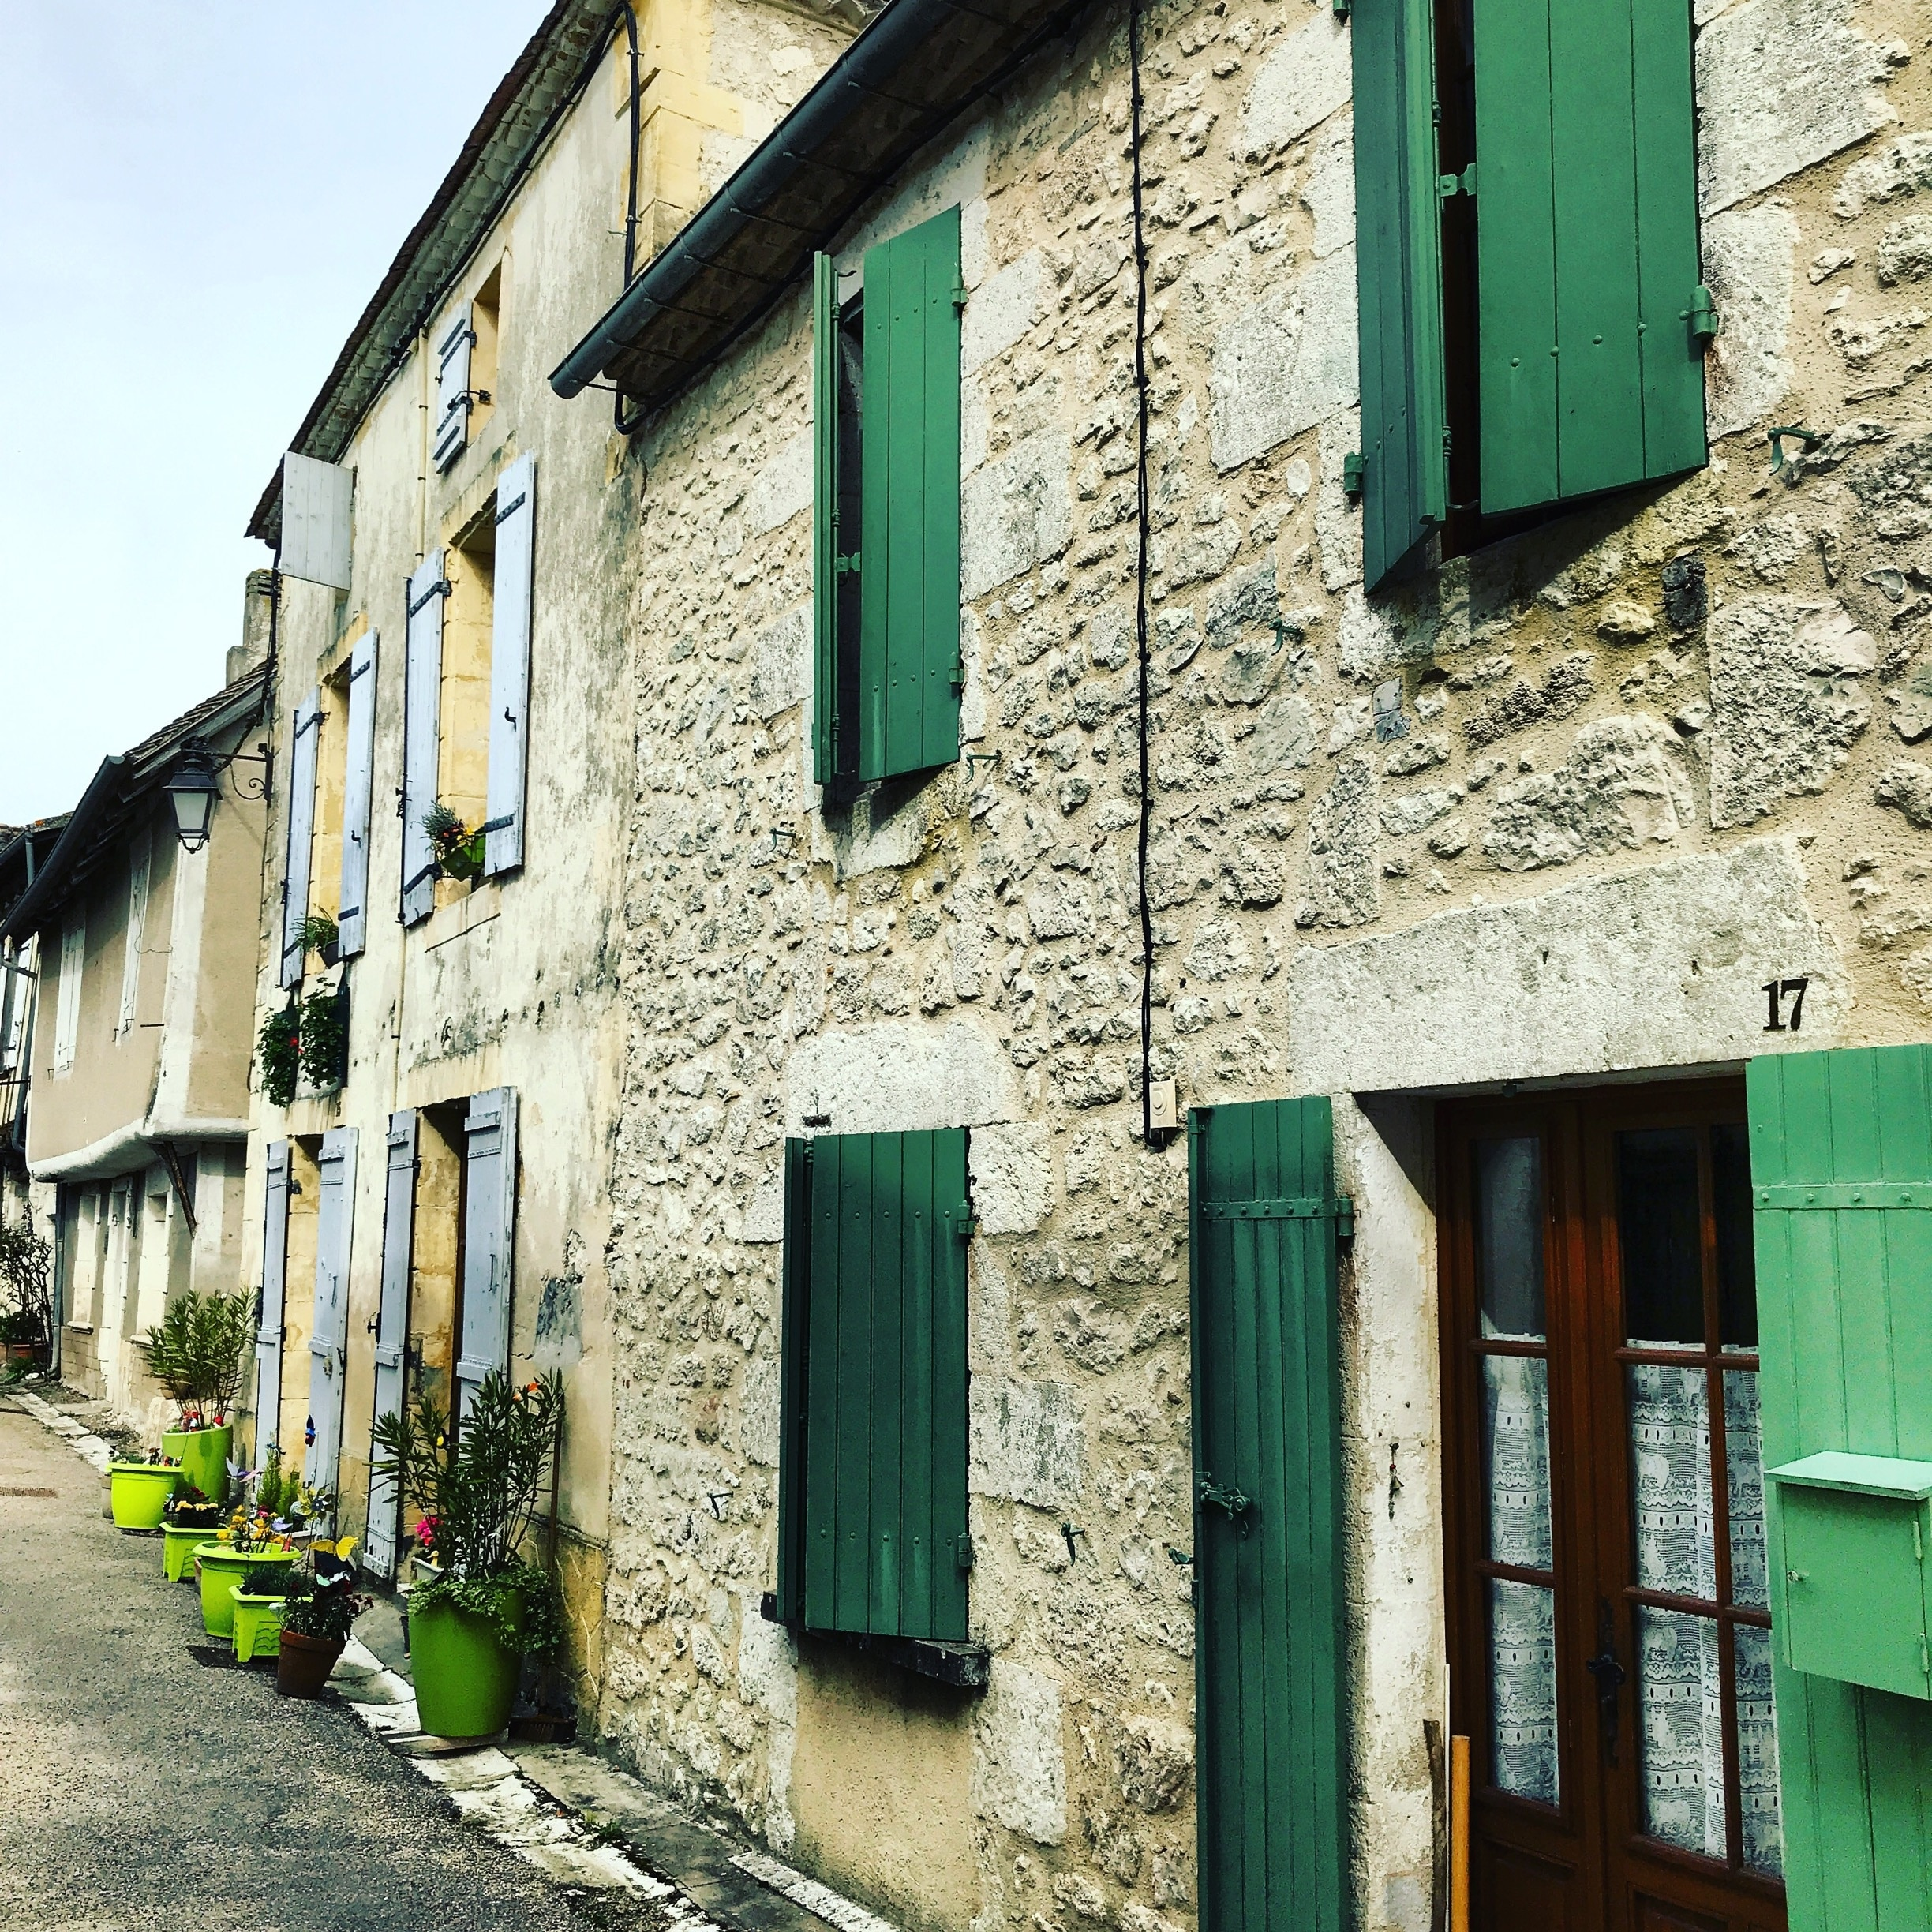 Issigeac, Dordogne, France